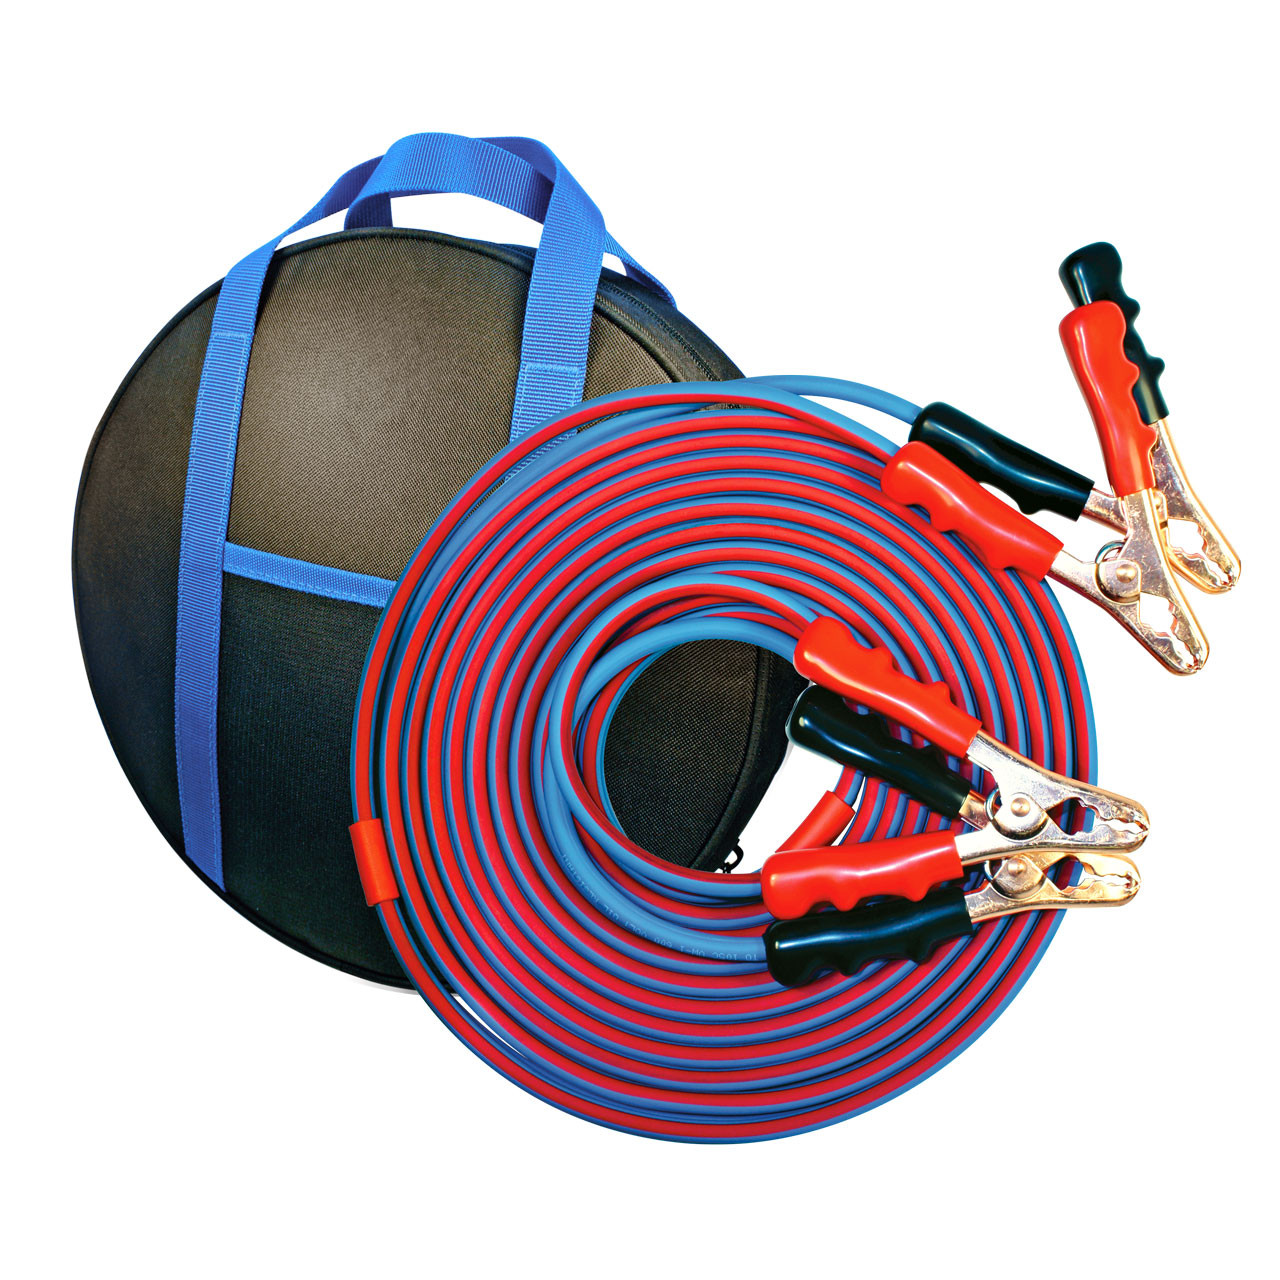 25' Cold Weather Jumper Cable, 2 Gauge, Booster